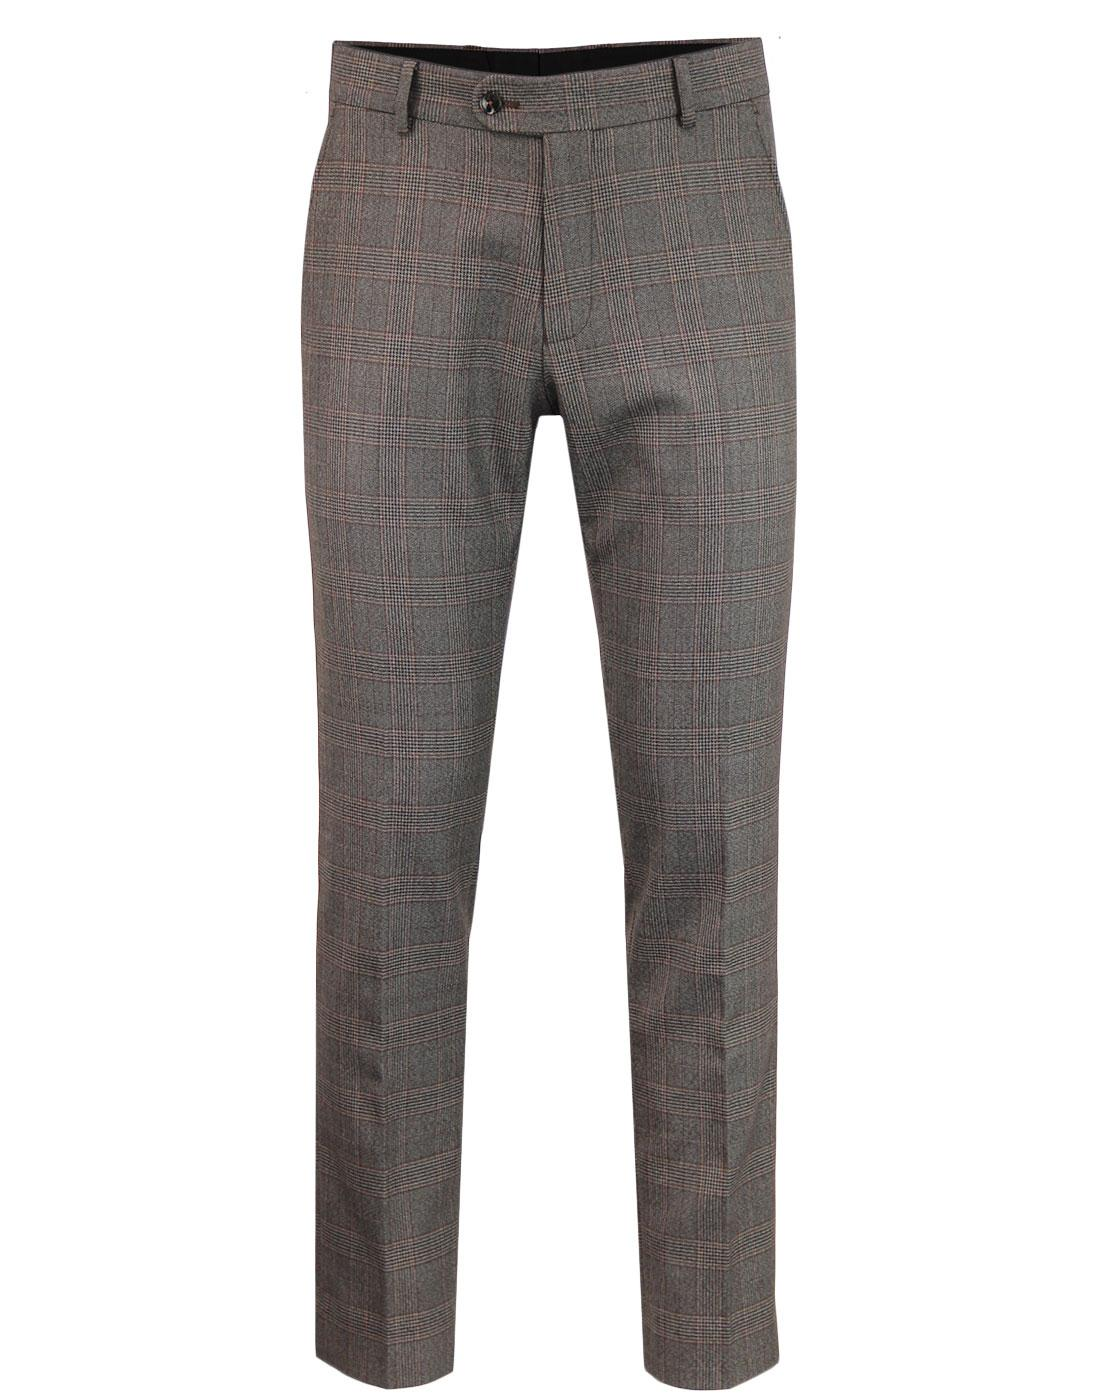 ANTIQUE ROGUE Retro Mod POW Check Suit Trousers F